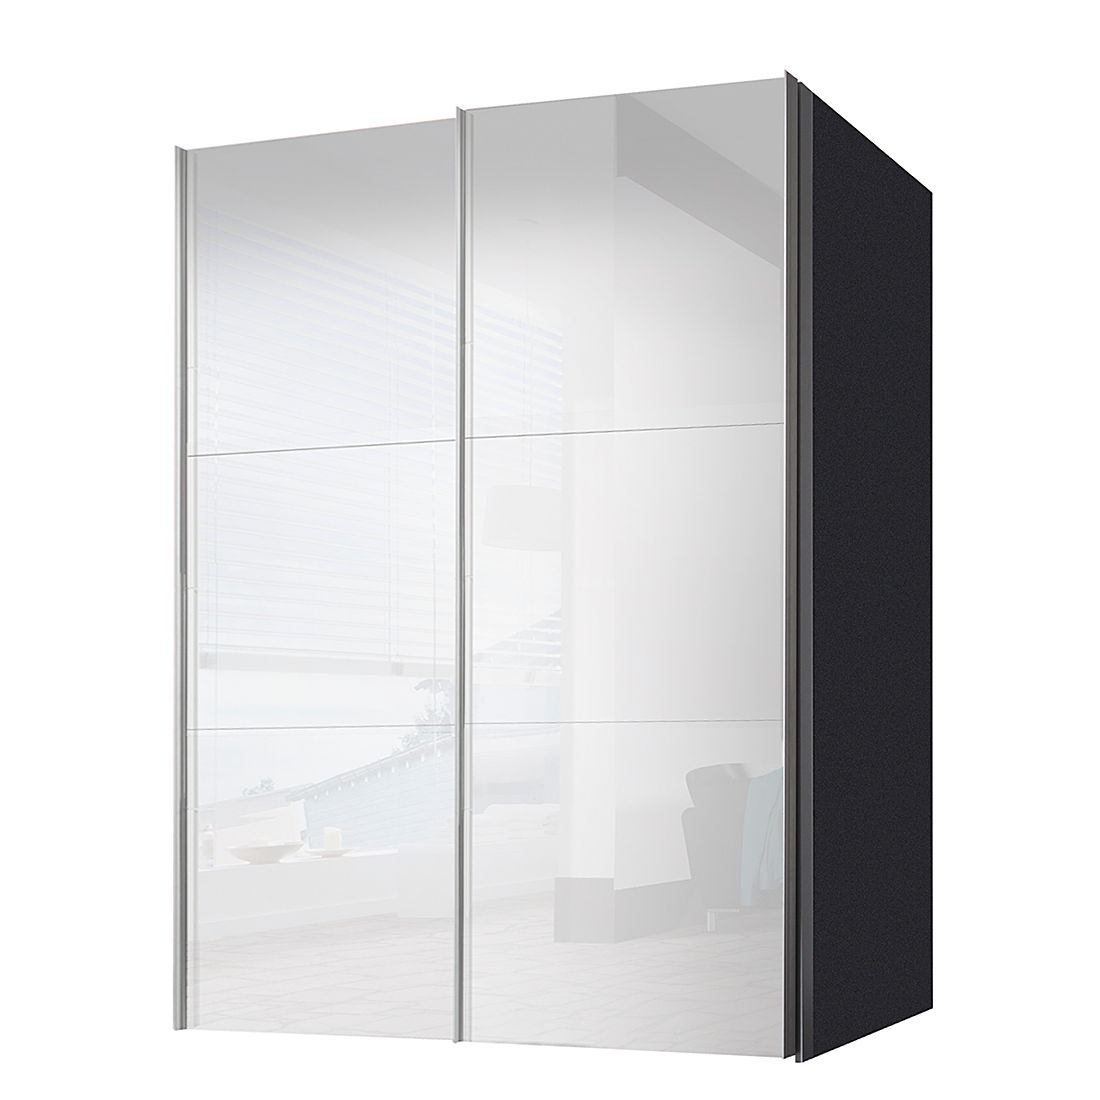 schwebet renschrank ruby graphit wei glas breite x h he. Black Bedroom Furniture Sets. Home Design Ideas